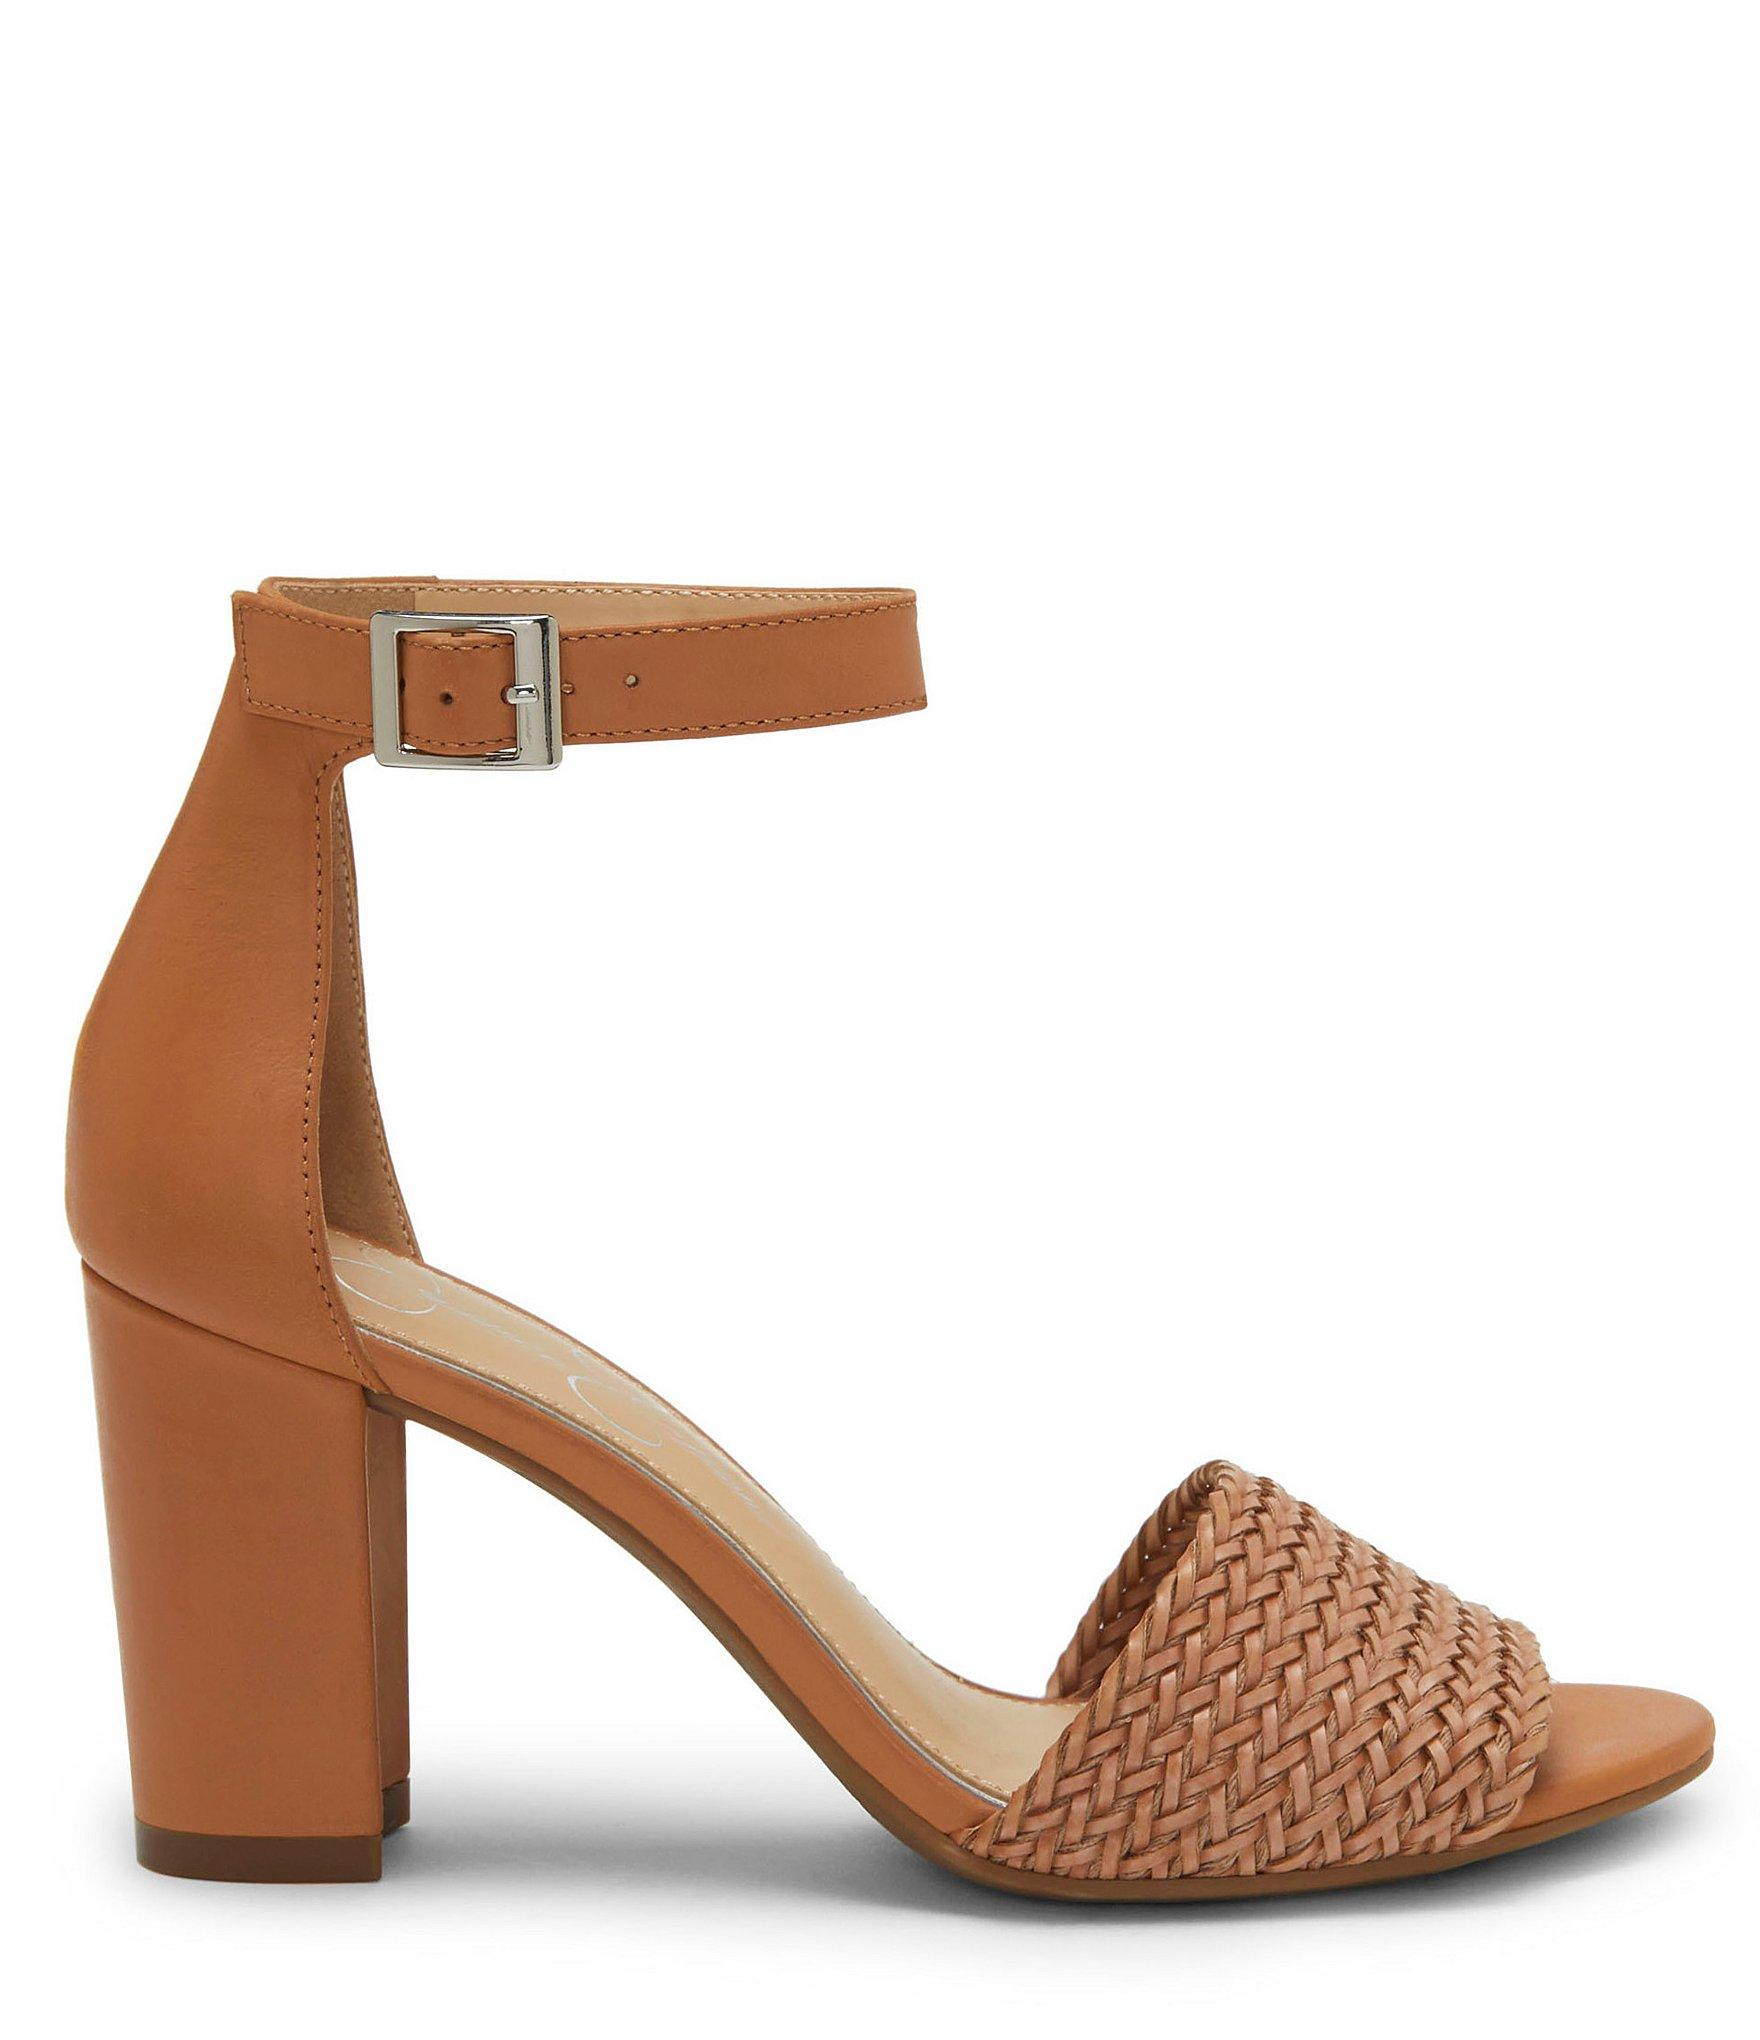 a293482c8d6e Jessica Simpson - Brown Sherron4 Woven Ankle Strap Block Heel Sandals - Lyst.  View fullscreen